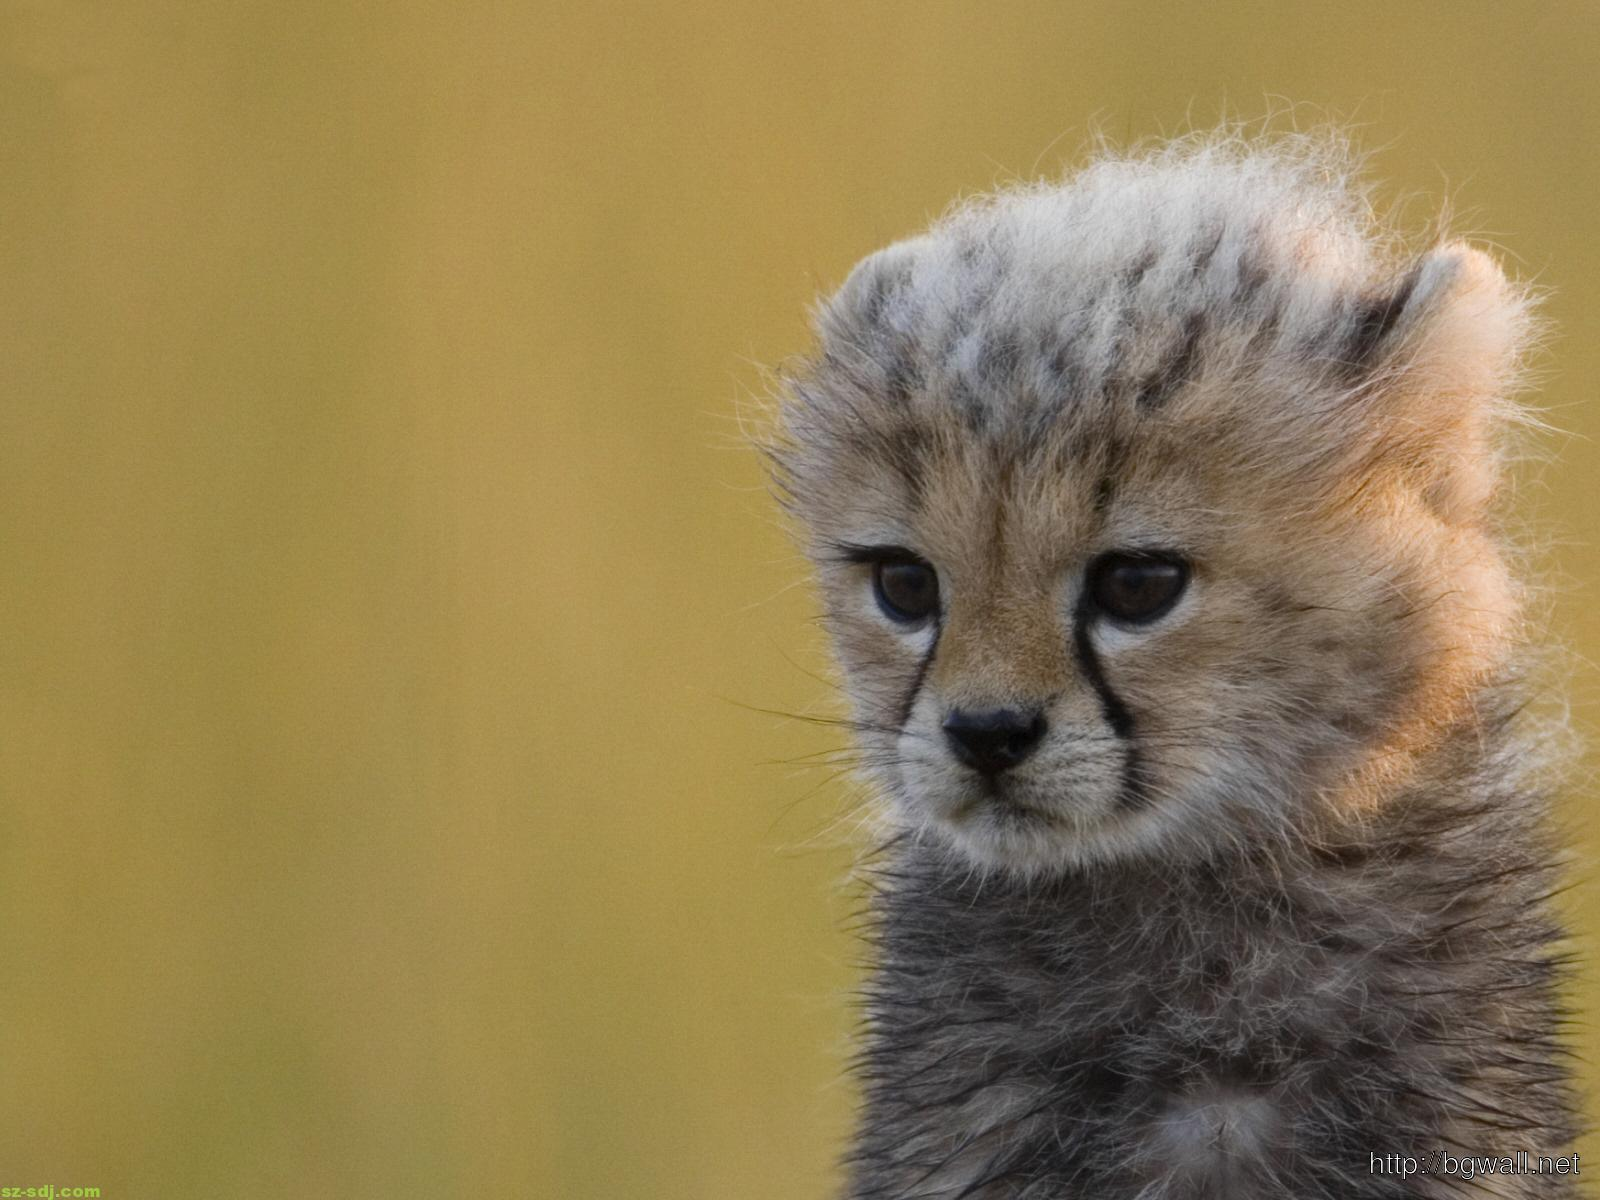 Cute Baby Cheetah Wallpaper – Background Wallpaper HD | 1600 x 1200 jpeg 161kB